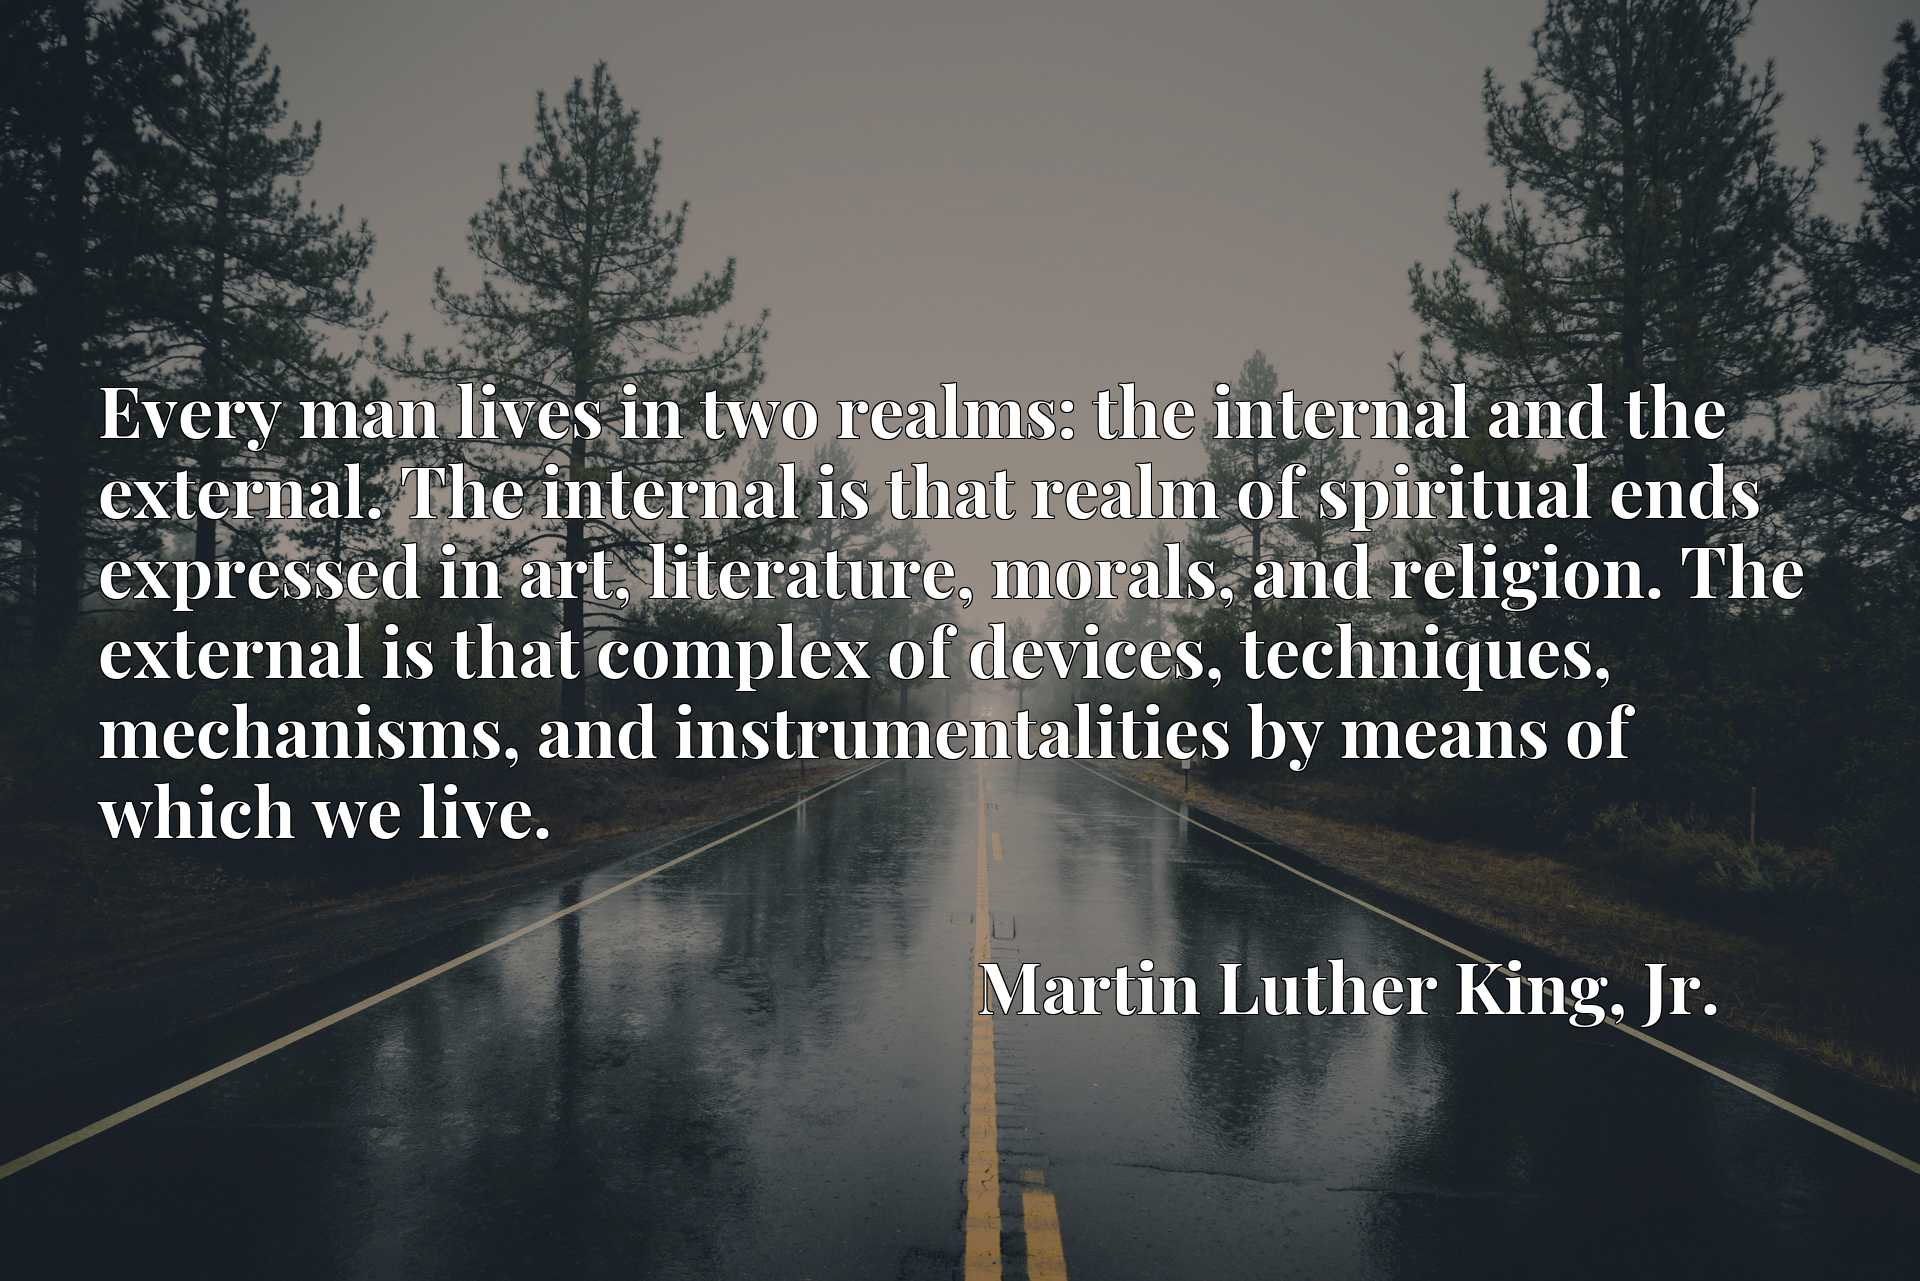 Every man lives in two realms: the internal and the external. The internal is that realm of spiritual ends expressed in art, literature, morals, and religion. The external is that complex of devices, techniques, mechanisms, and instrumentalities by means of which we live.